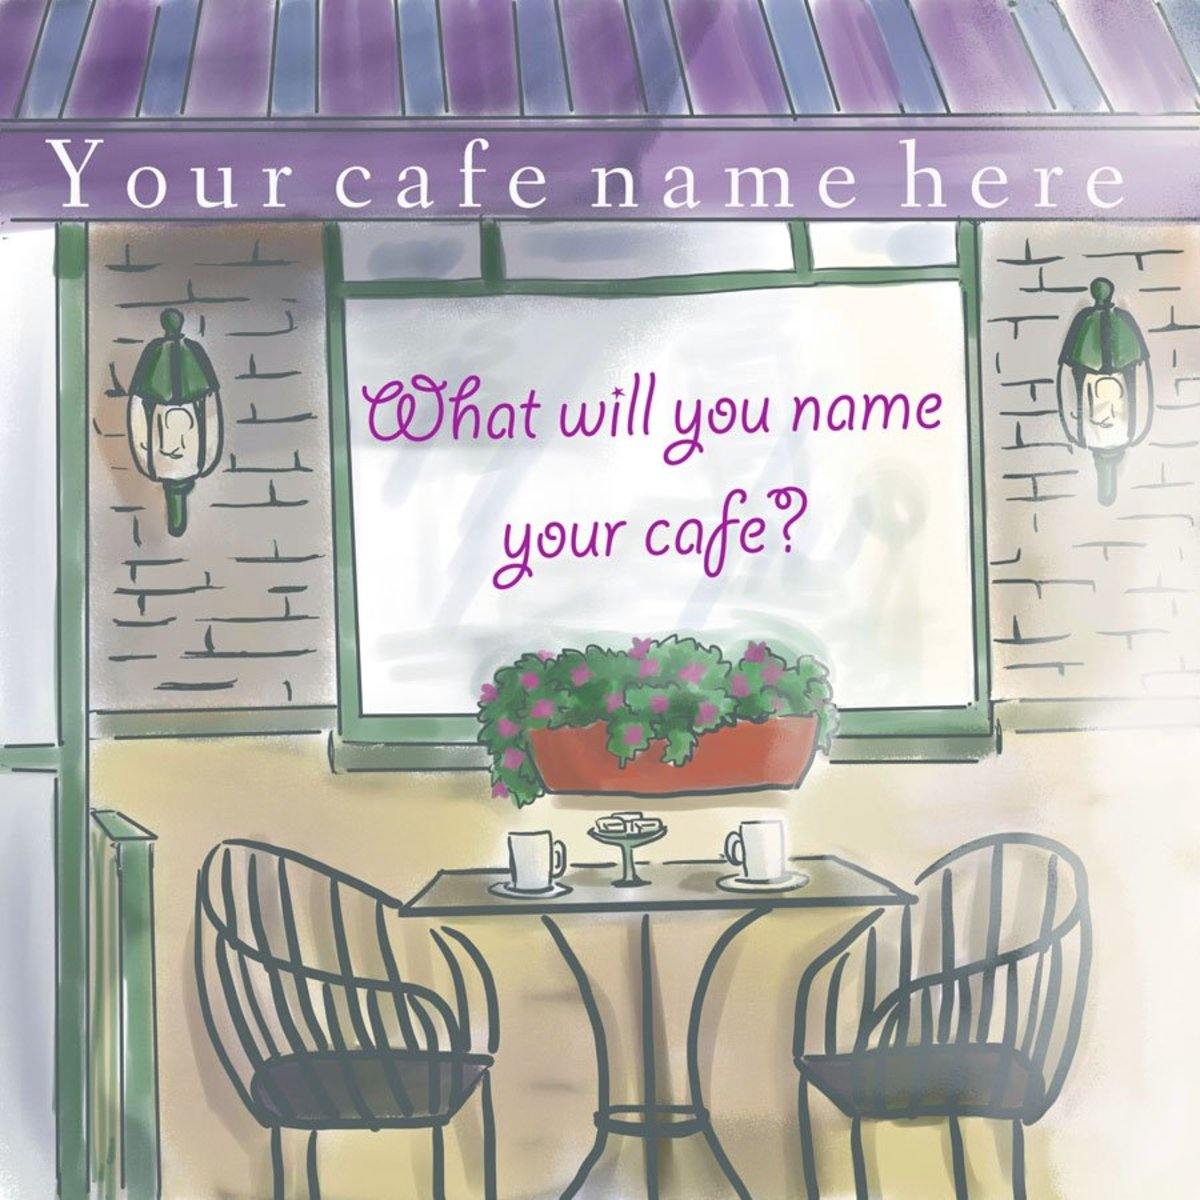 Are you searching for a cafe name?